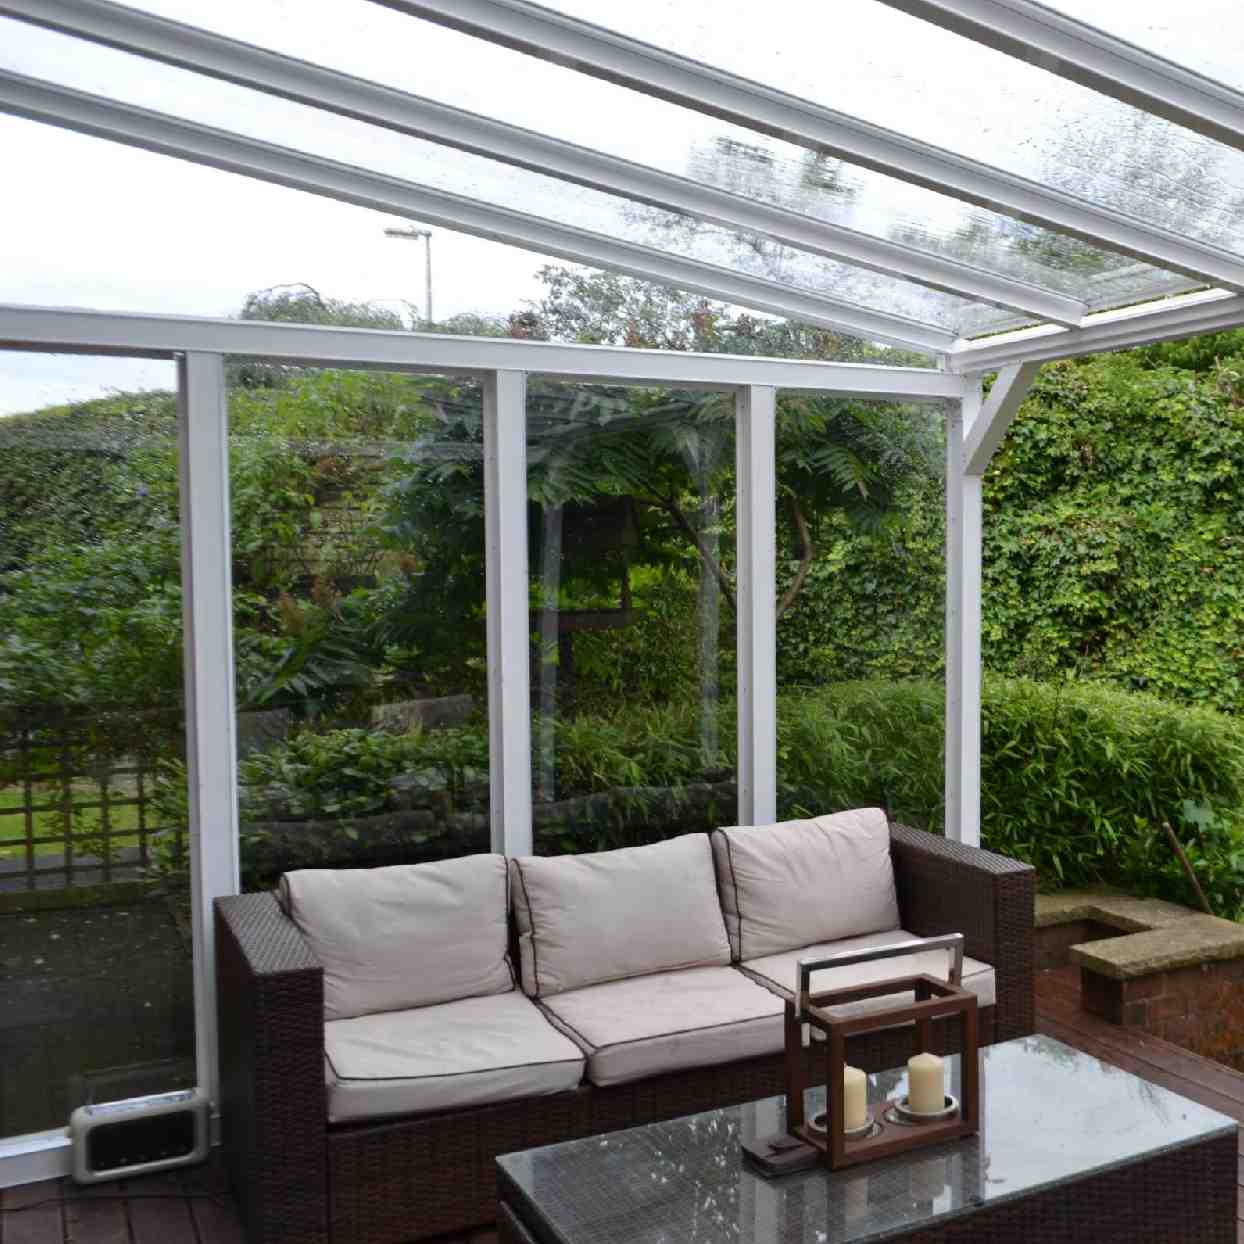 Buy Omega Verandah with 6mm Glass Clear Plate Polycarbonate Glazing - 8.4m (W) x 2.5m (P), (4) Supporting Posts online today